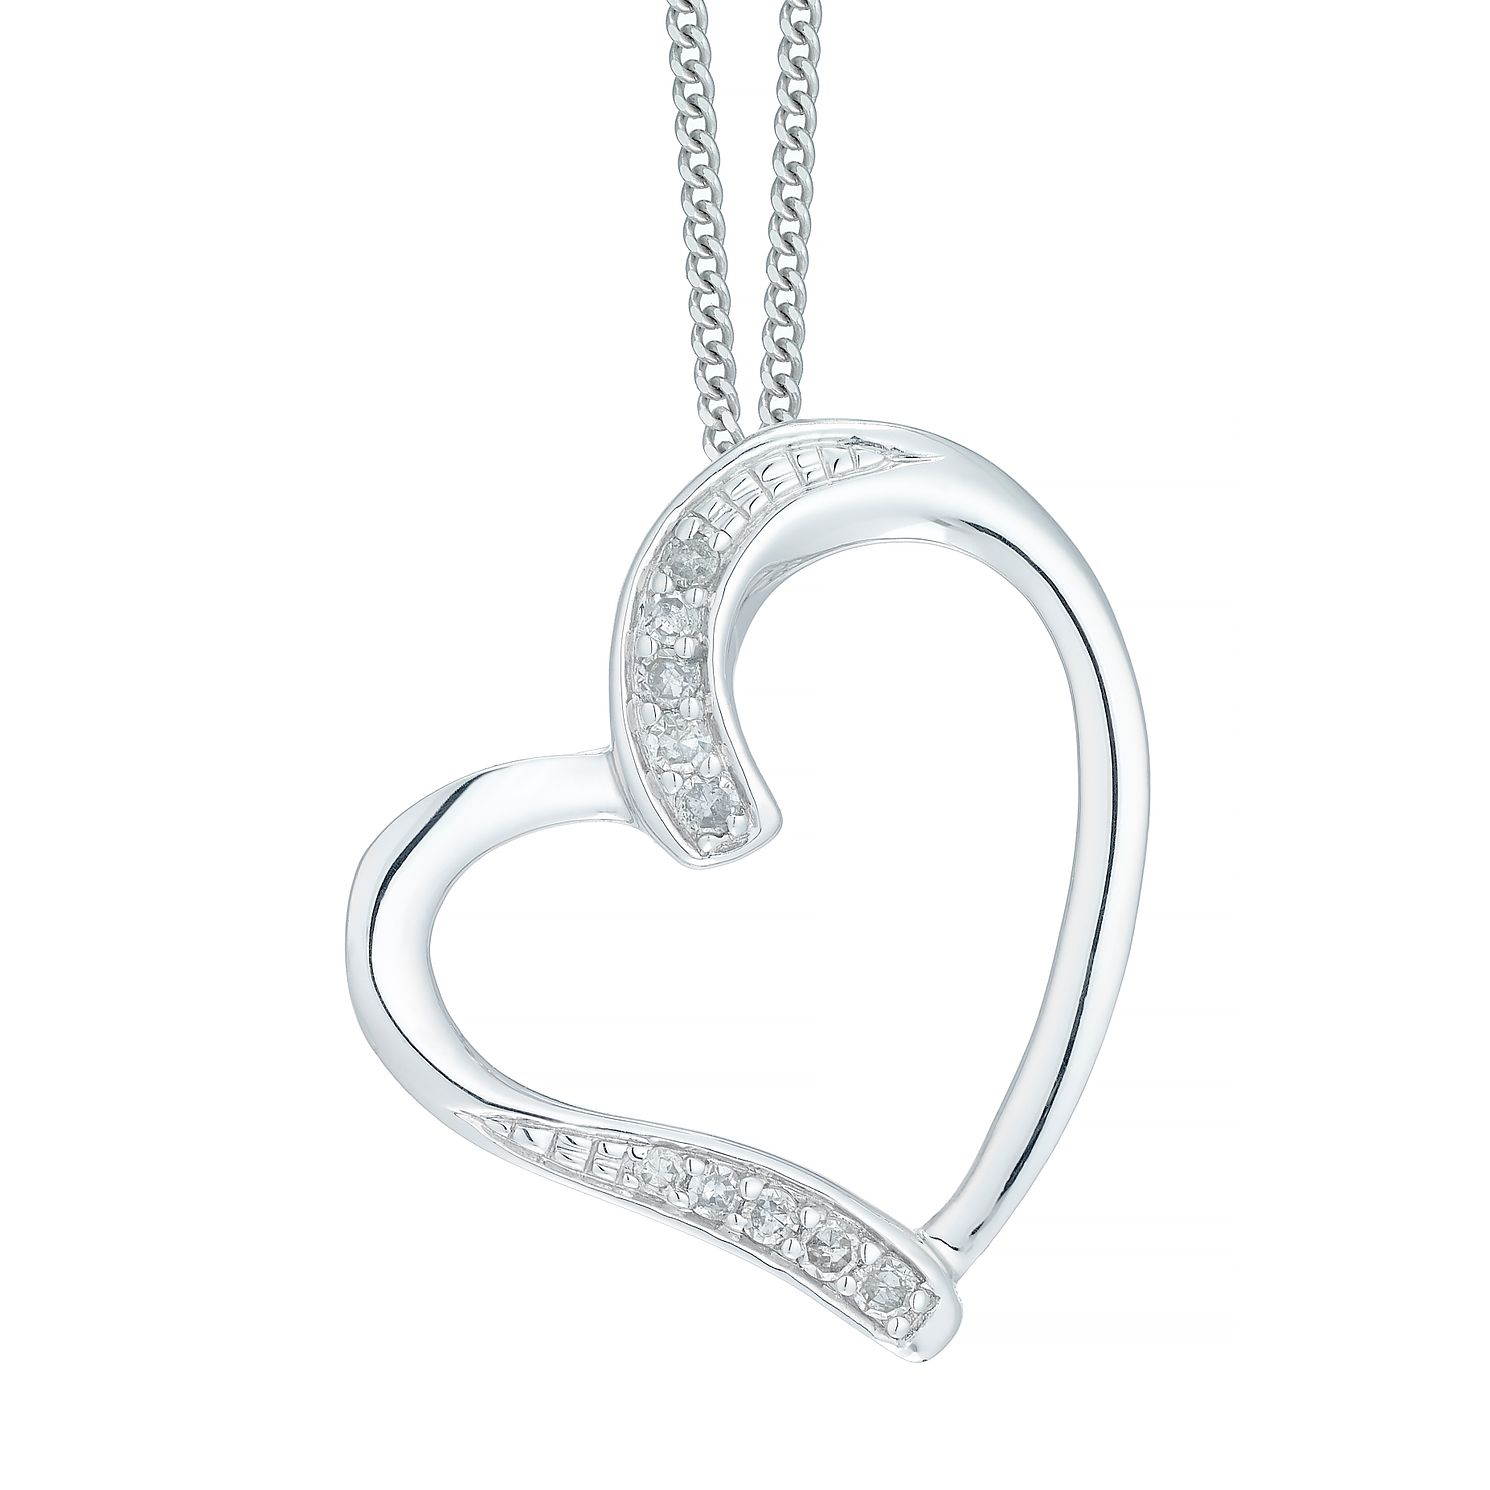 r j product jewellery jewels gift diamond anniversary gold heart fullxfull pendant necklace il